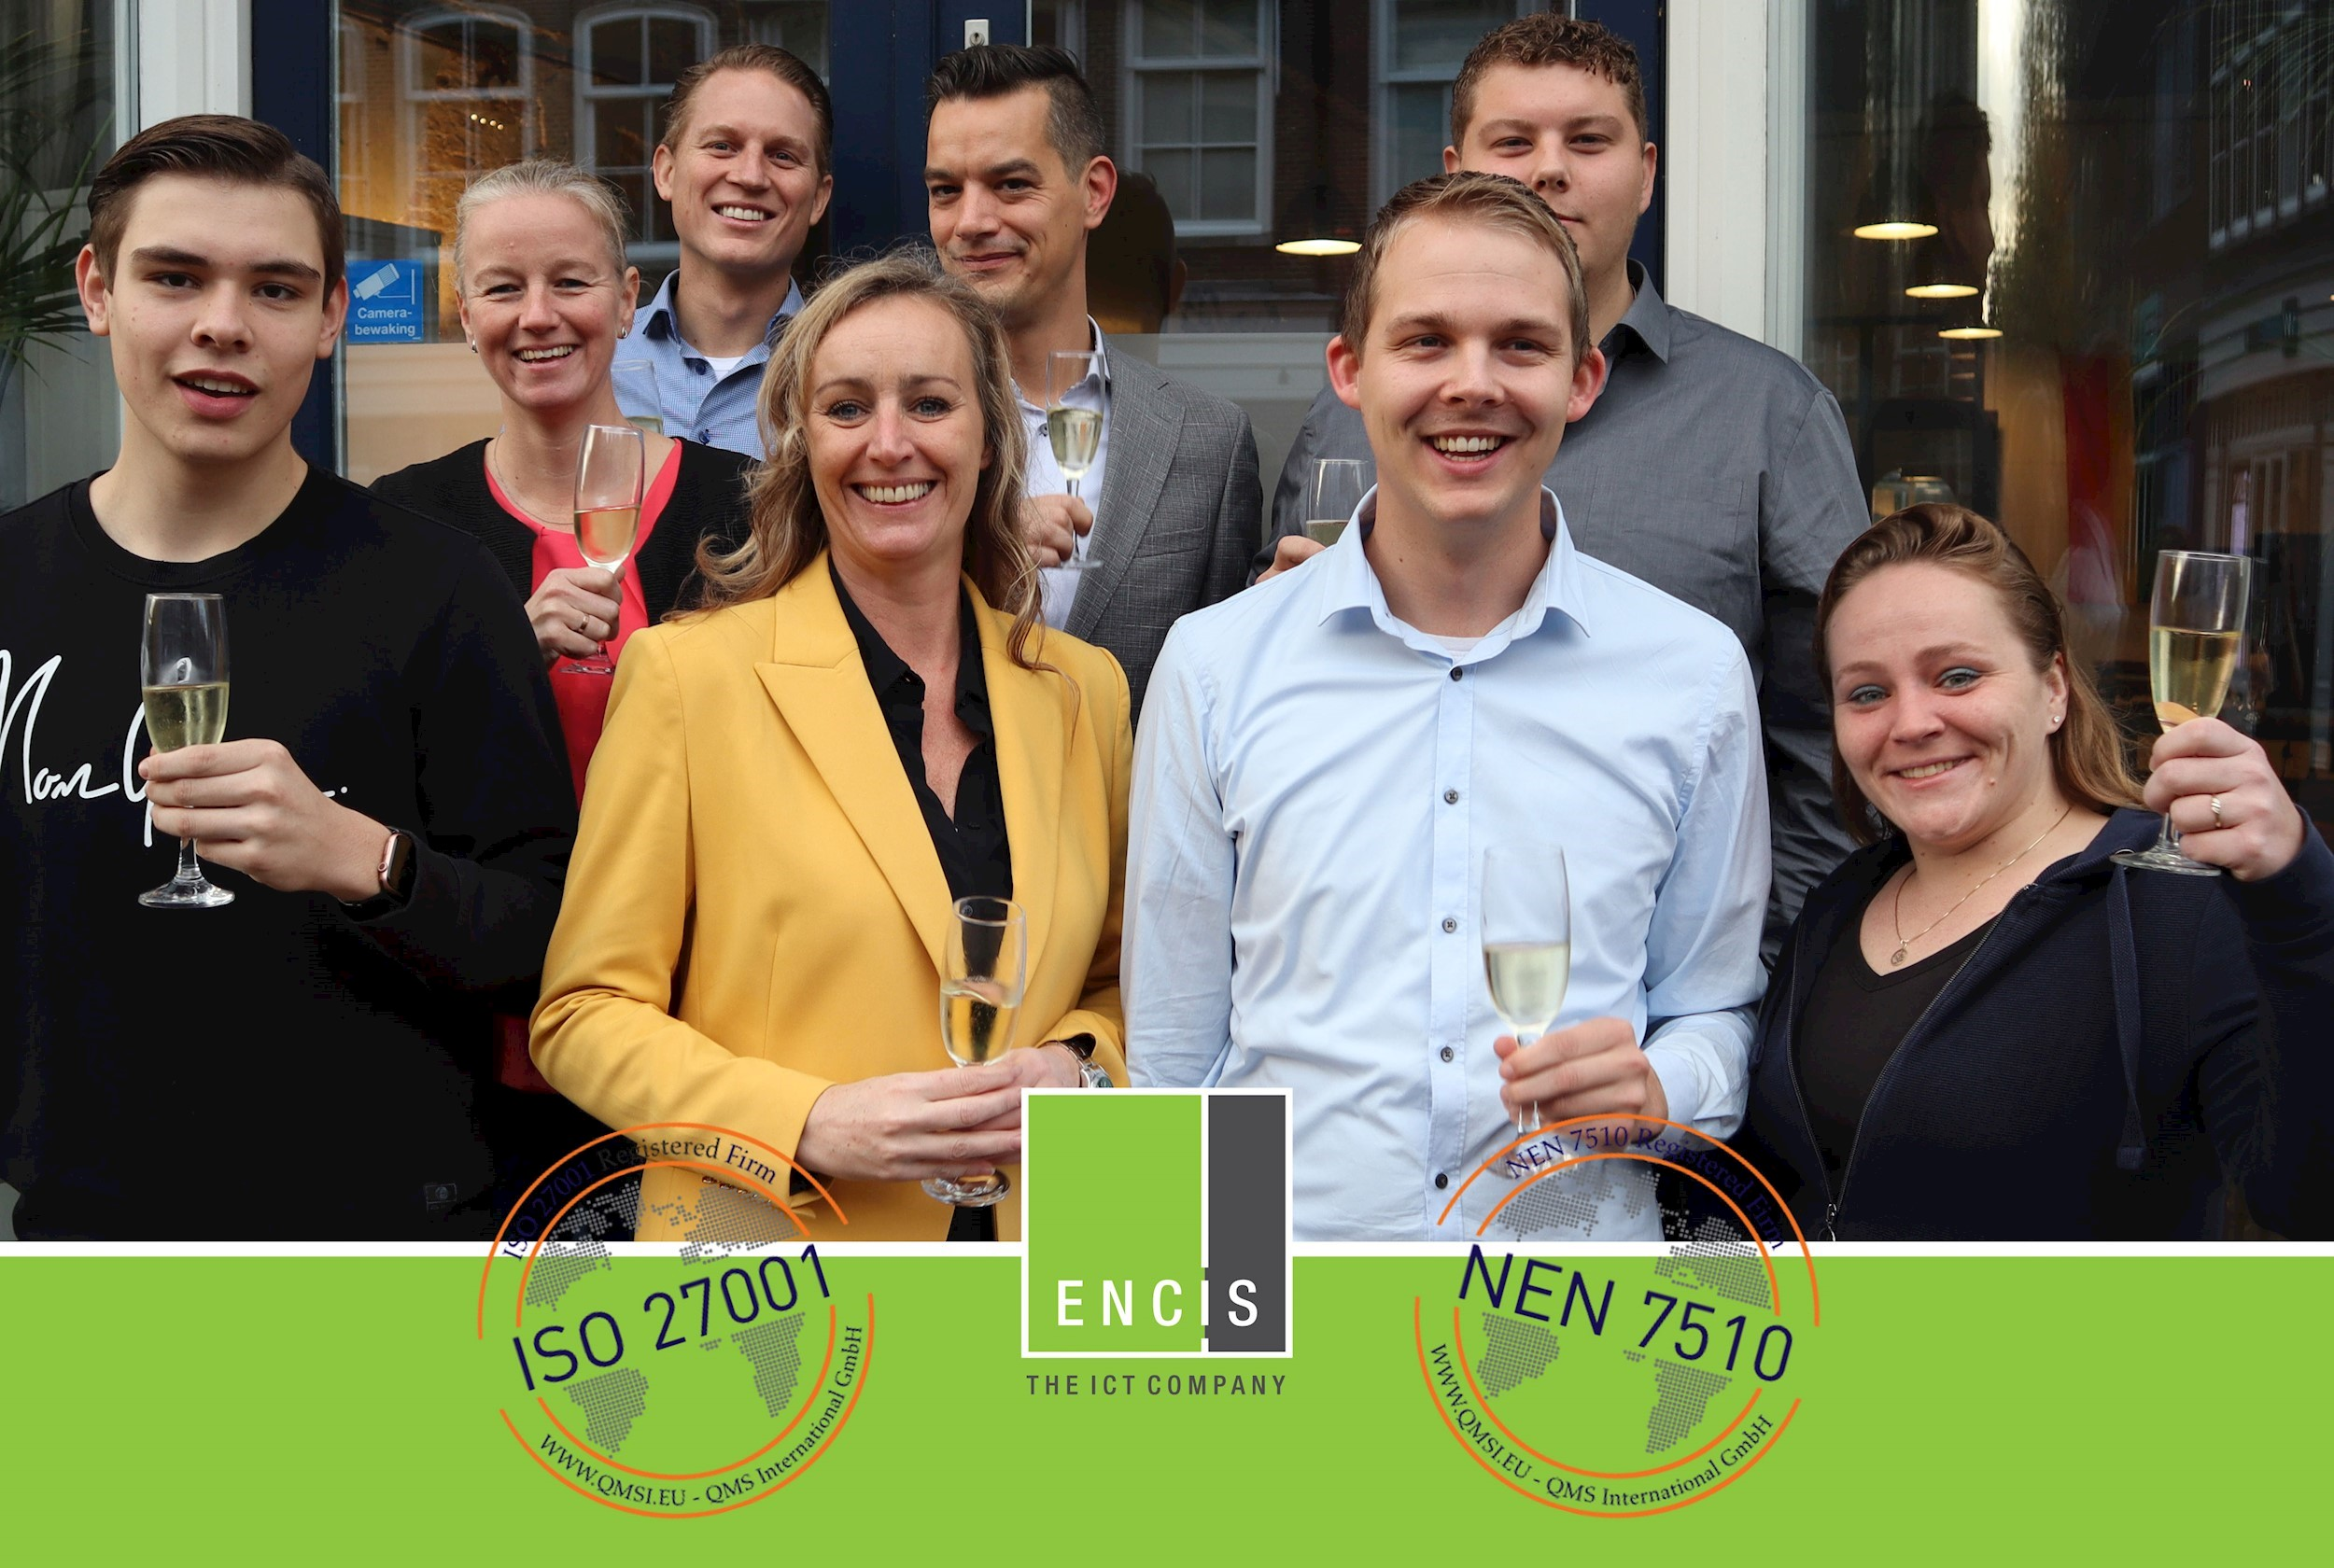 Encis is ISO 27001 en NEN 7510 gecertificeerd!